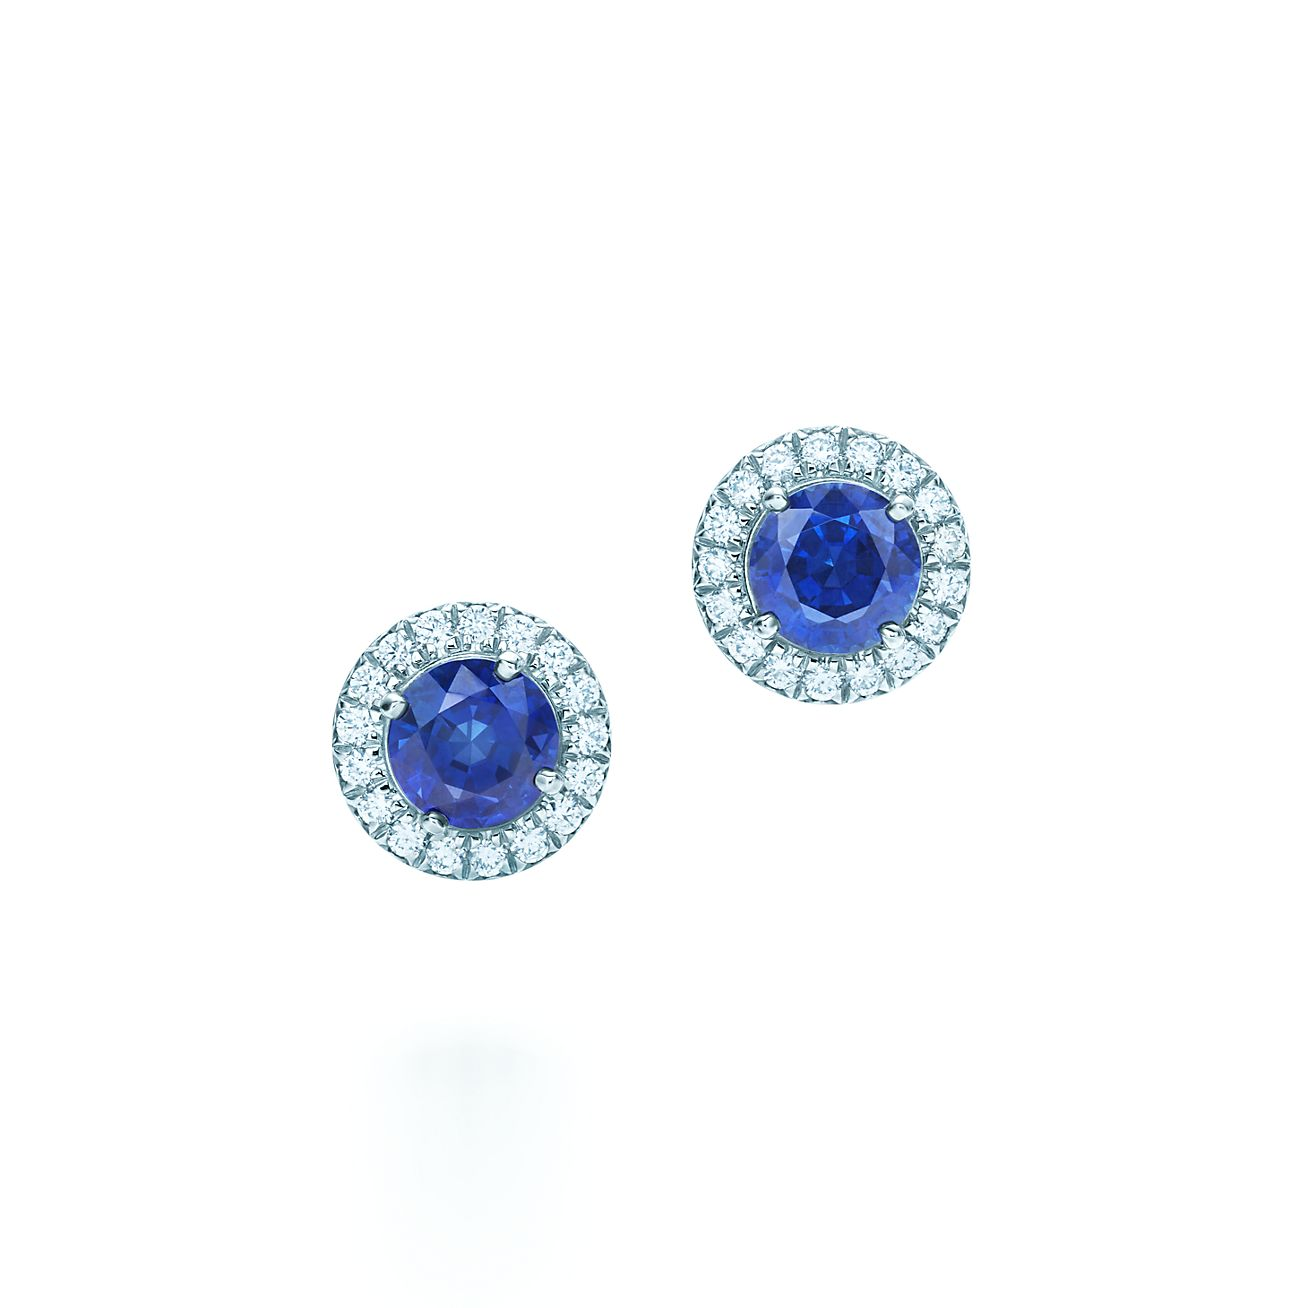 inch saphire earrings white gold diamond sapphire huggies hoop